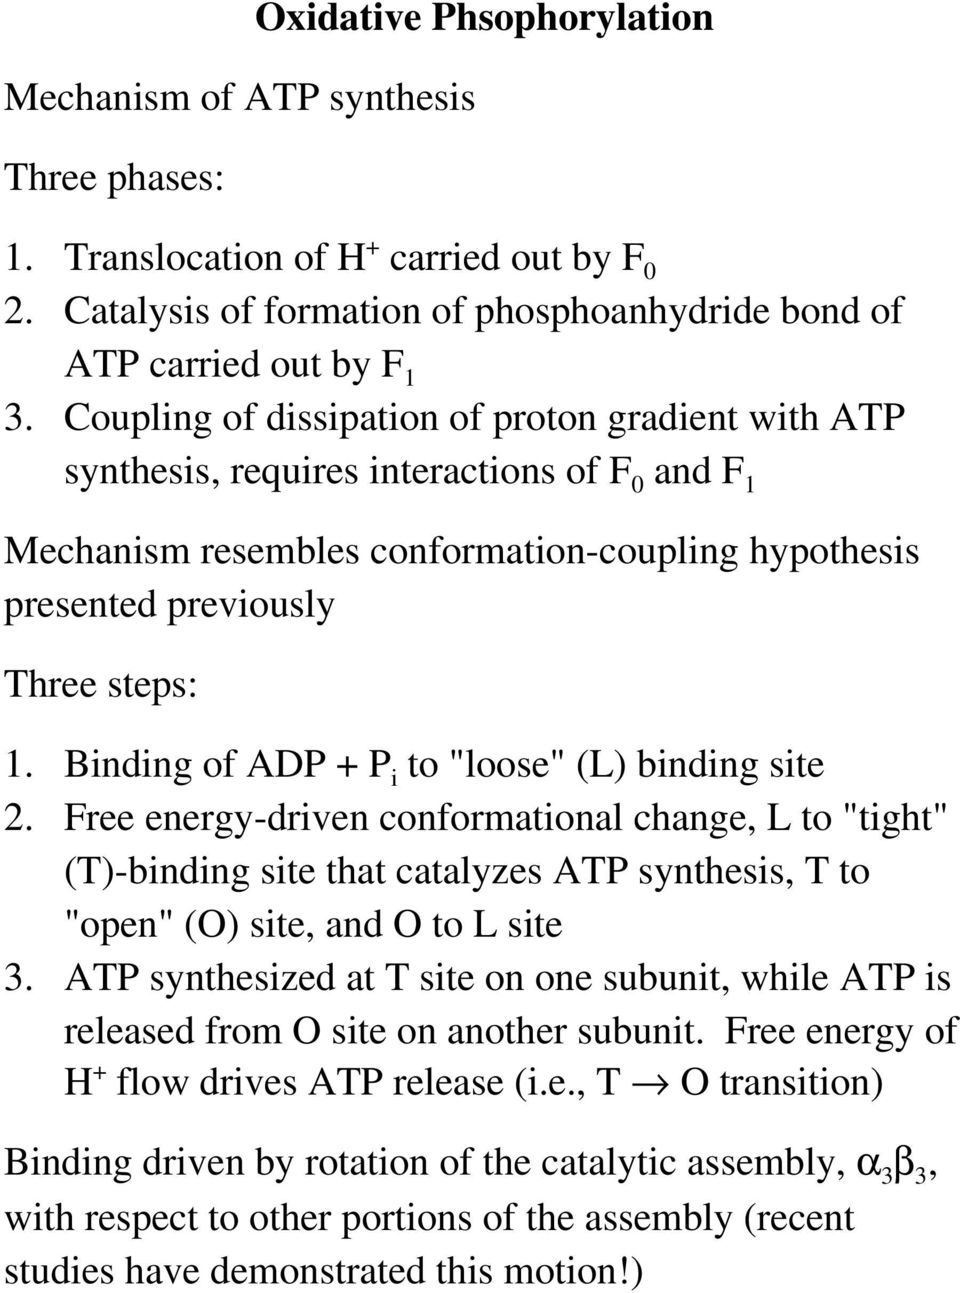 "Binding of ADP + P i to ""loose"" (L) binding site 2. Free energy-driven conformational change, L to ""tight"" (T)-binding site that catalyzes ATP synthesis, T to ""open"" (O) site, and O to L site 3."